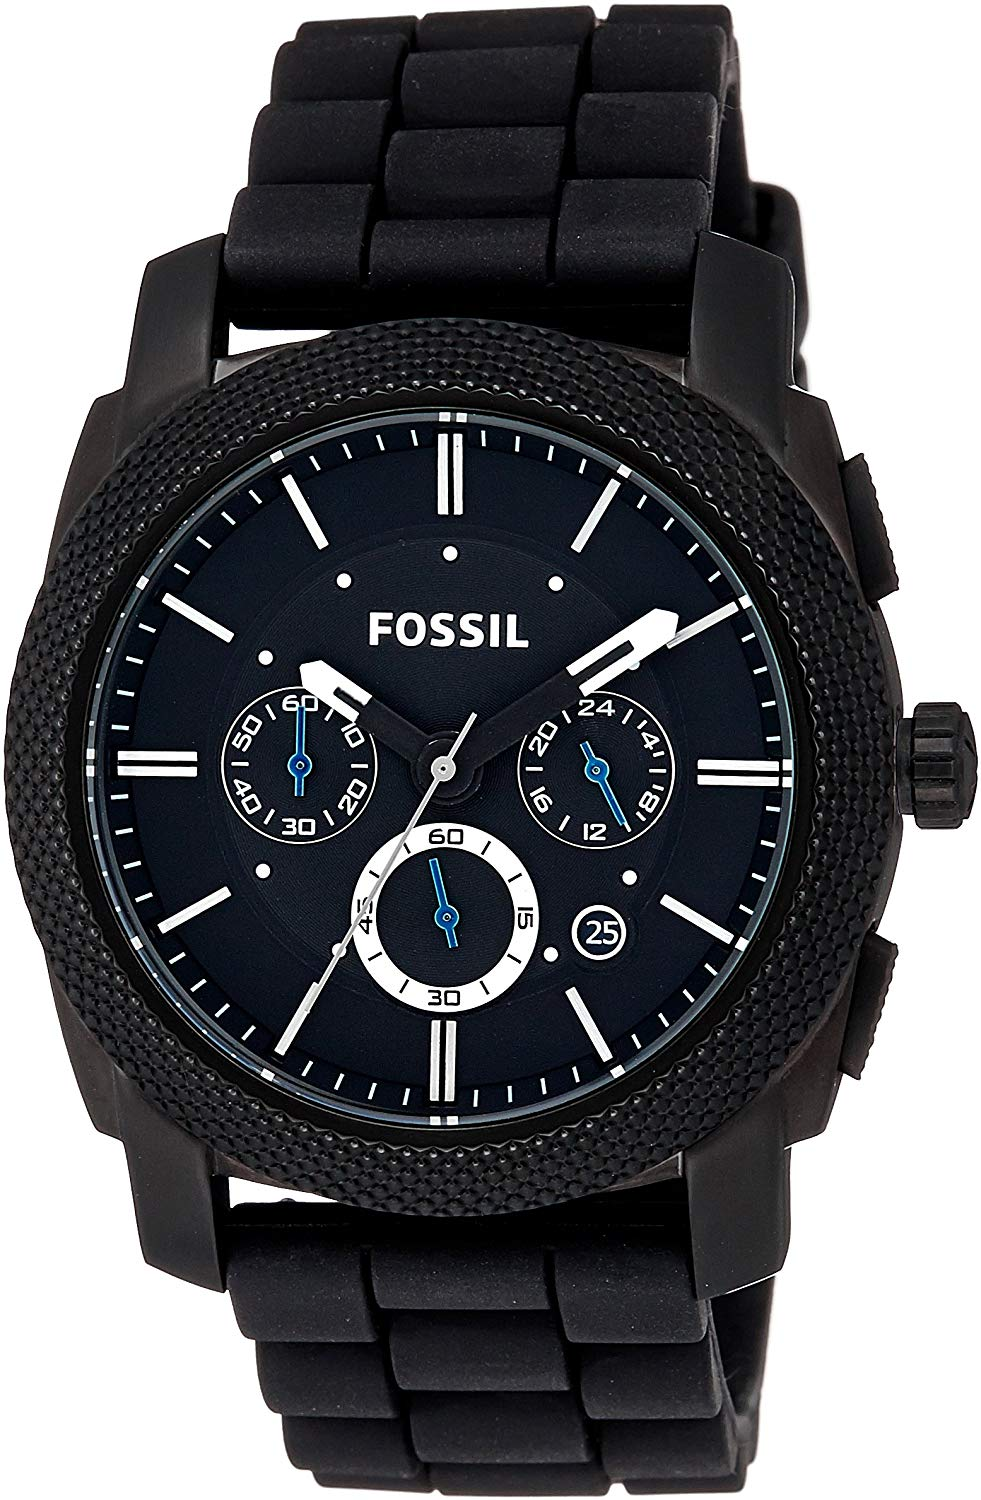 Fossil FS4487 Chronograph Watch